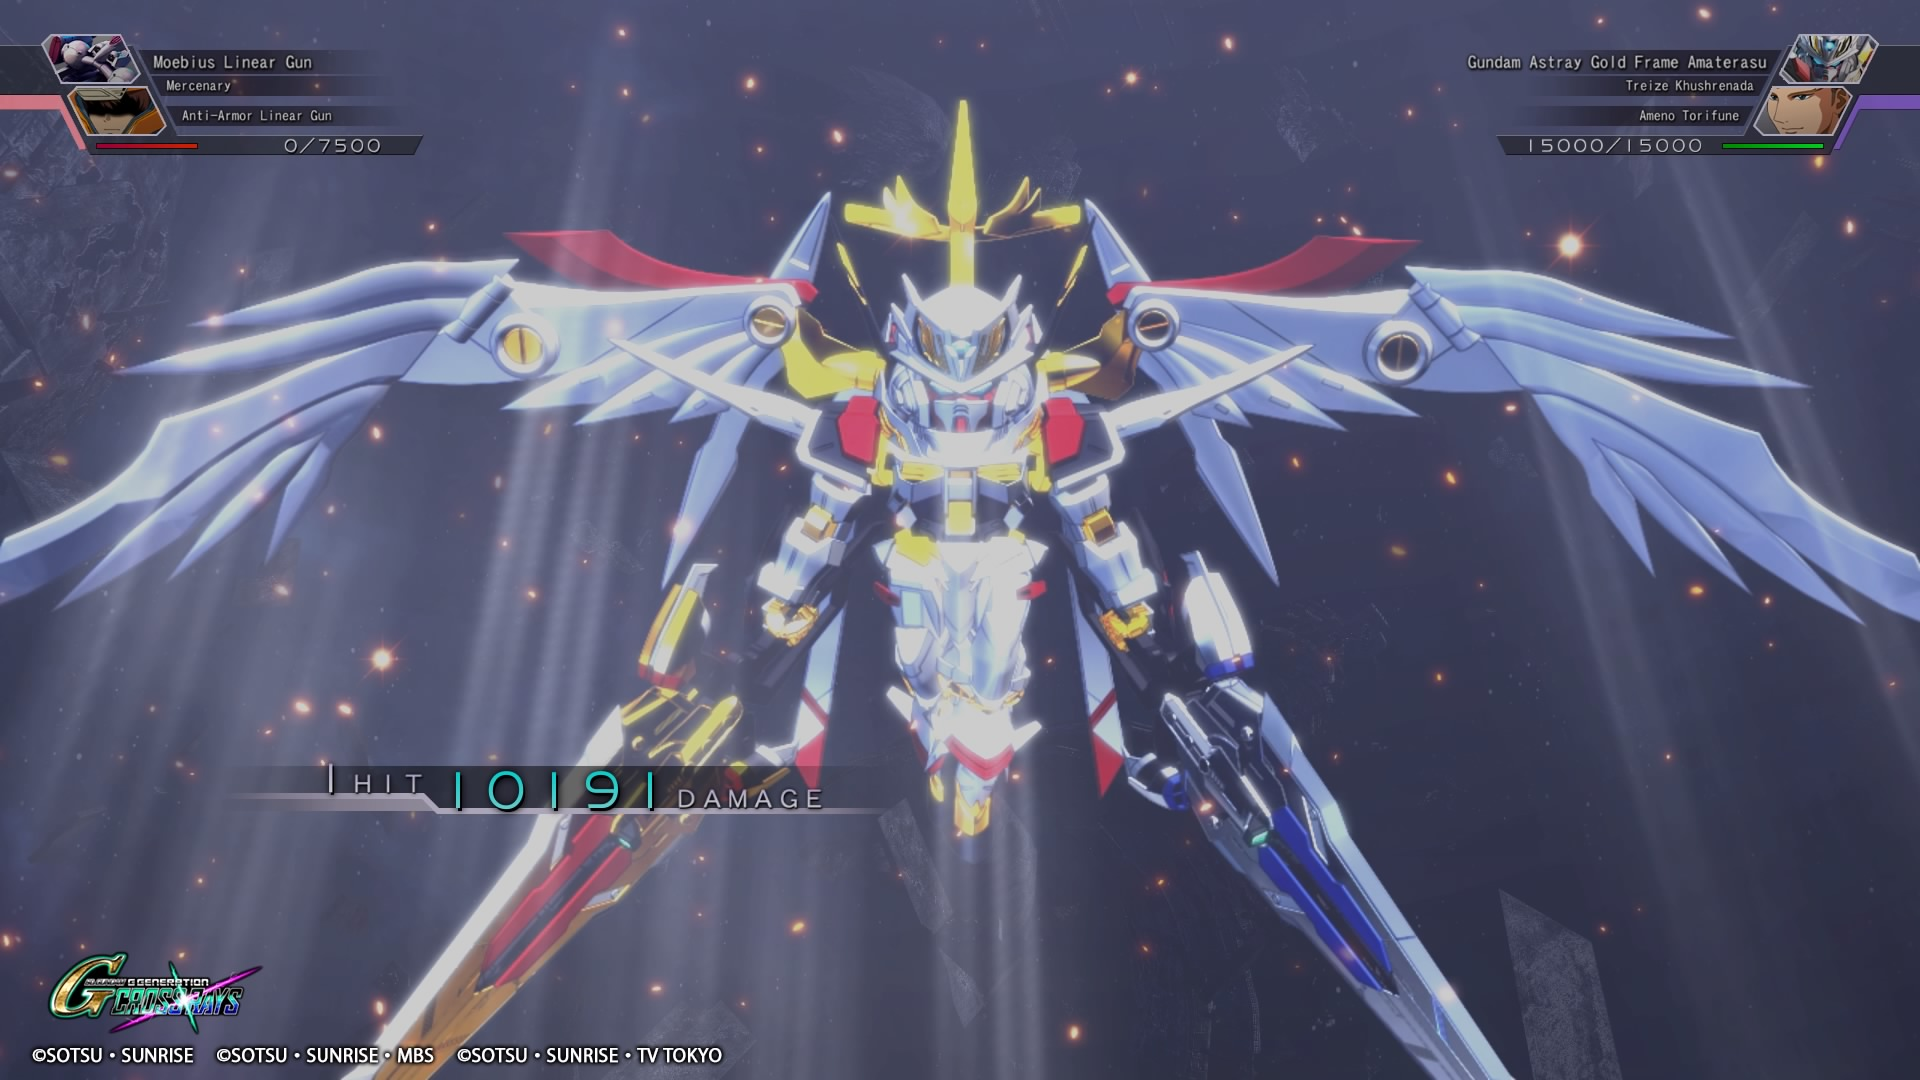 The final DLC pack for SD Gundam G Generation Cross Rays is now available screenshot